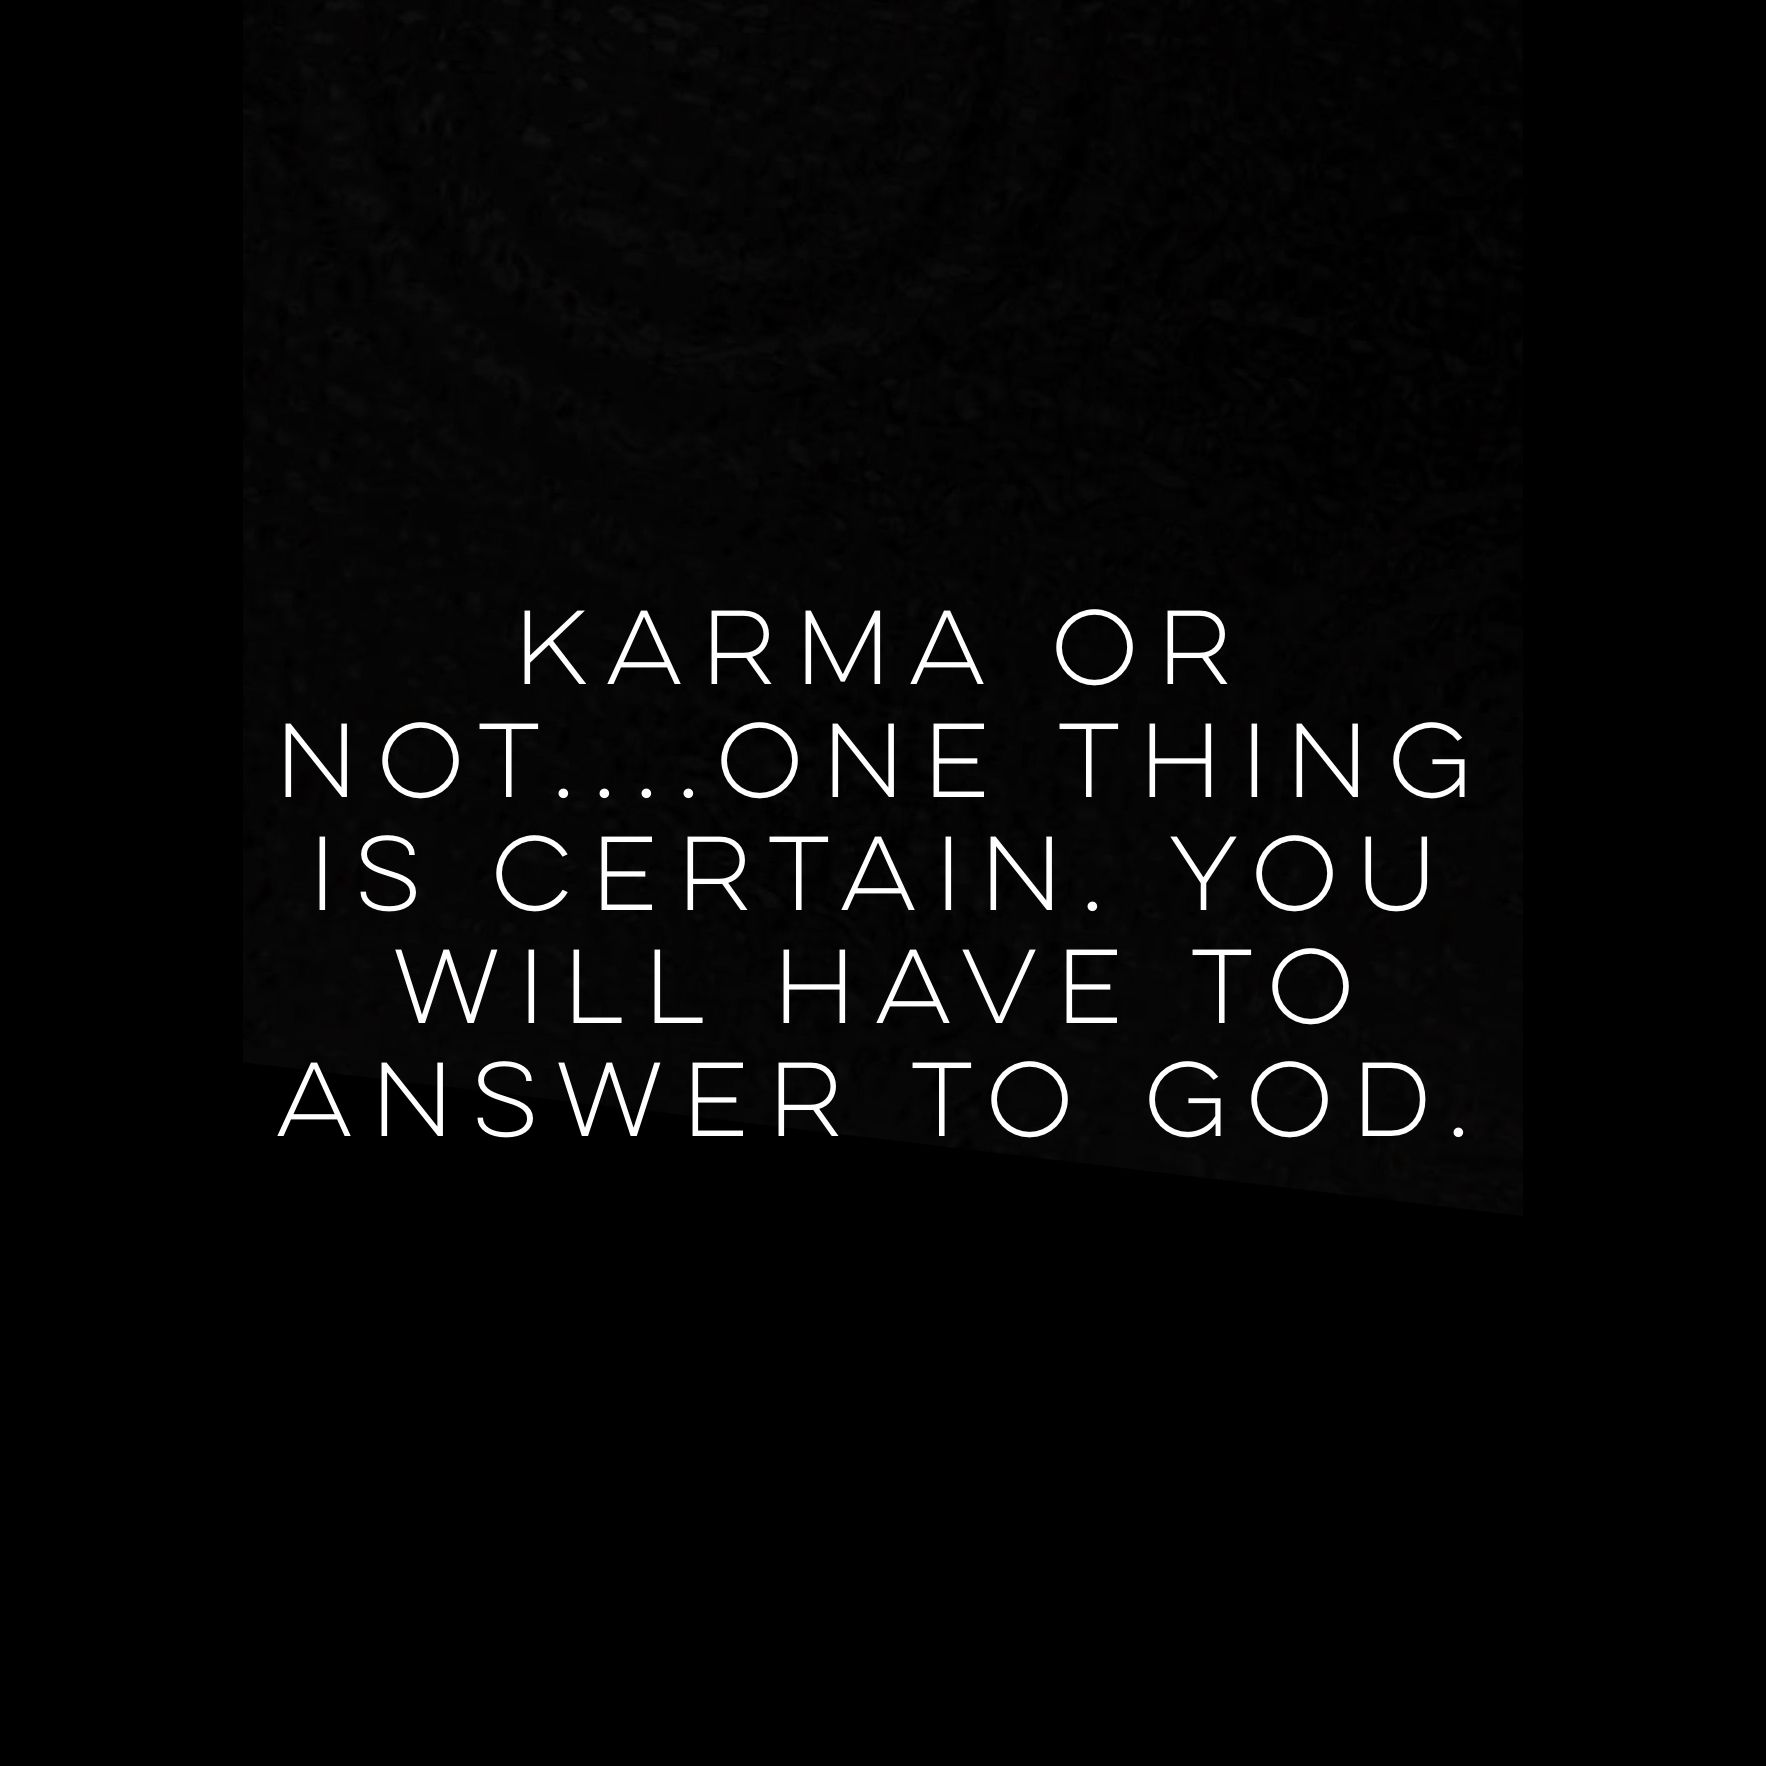 Karma and God: How My Karma Taught Me About Life and God